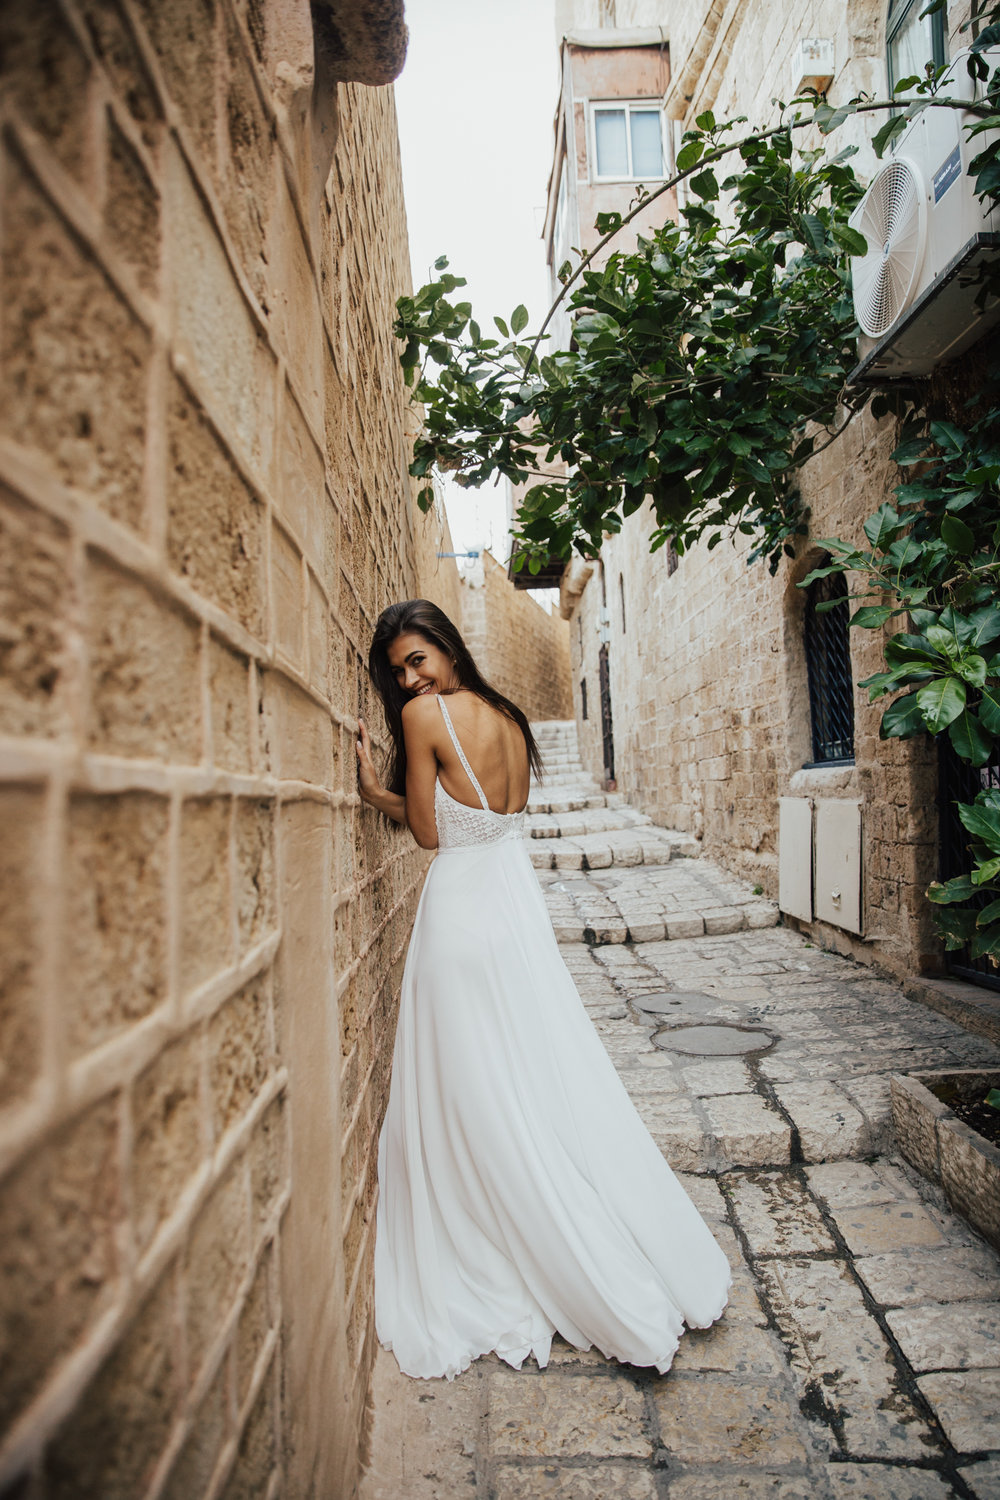 KalaKala Bridal Lookbook In Jaffa Israel Forever Photography